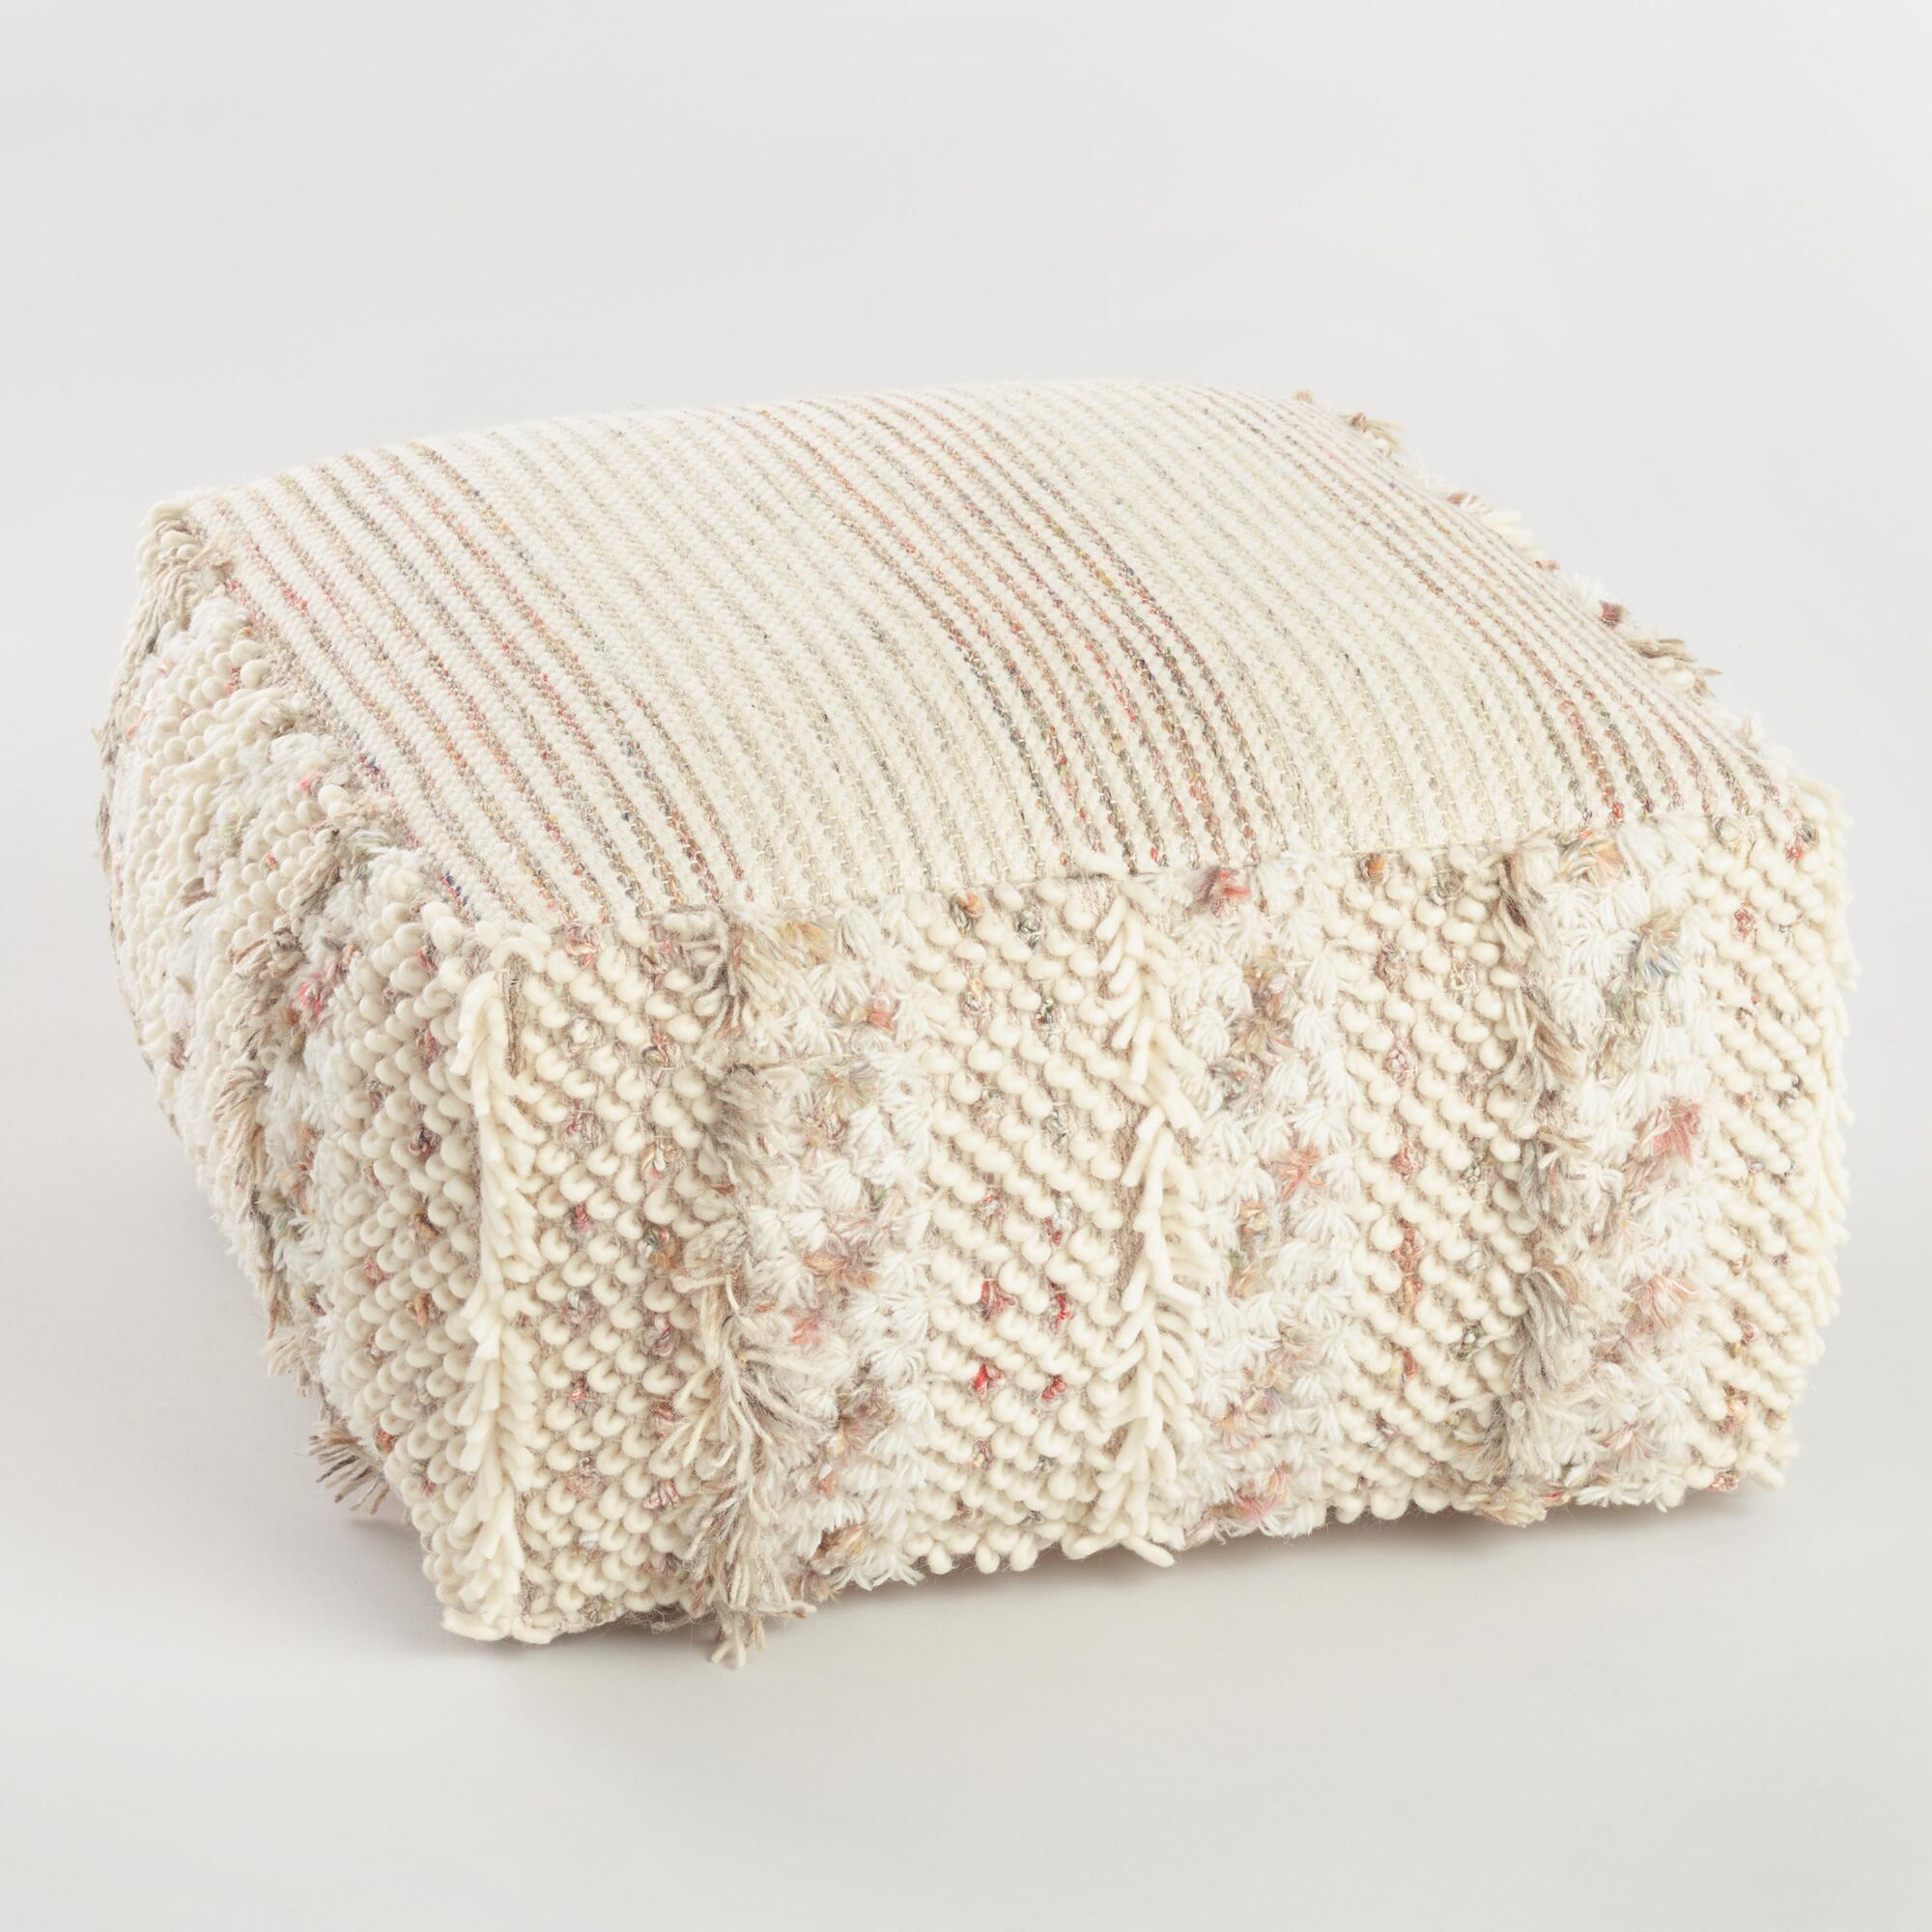 Floor Cushions And Poufs | Droughtrelief.org